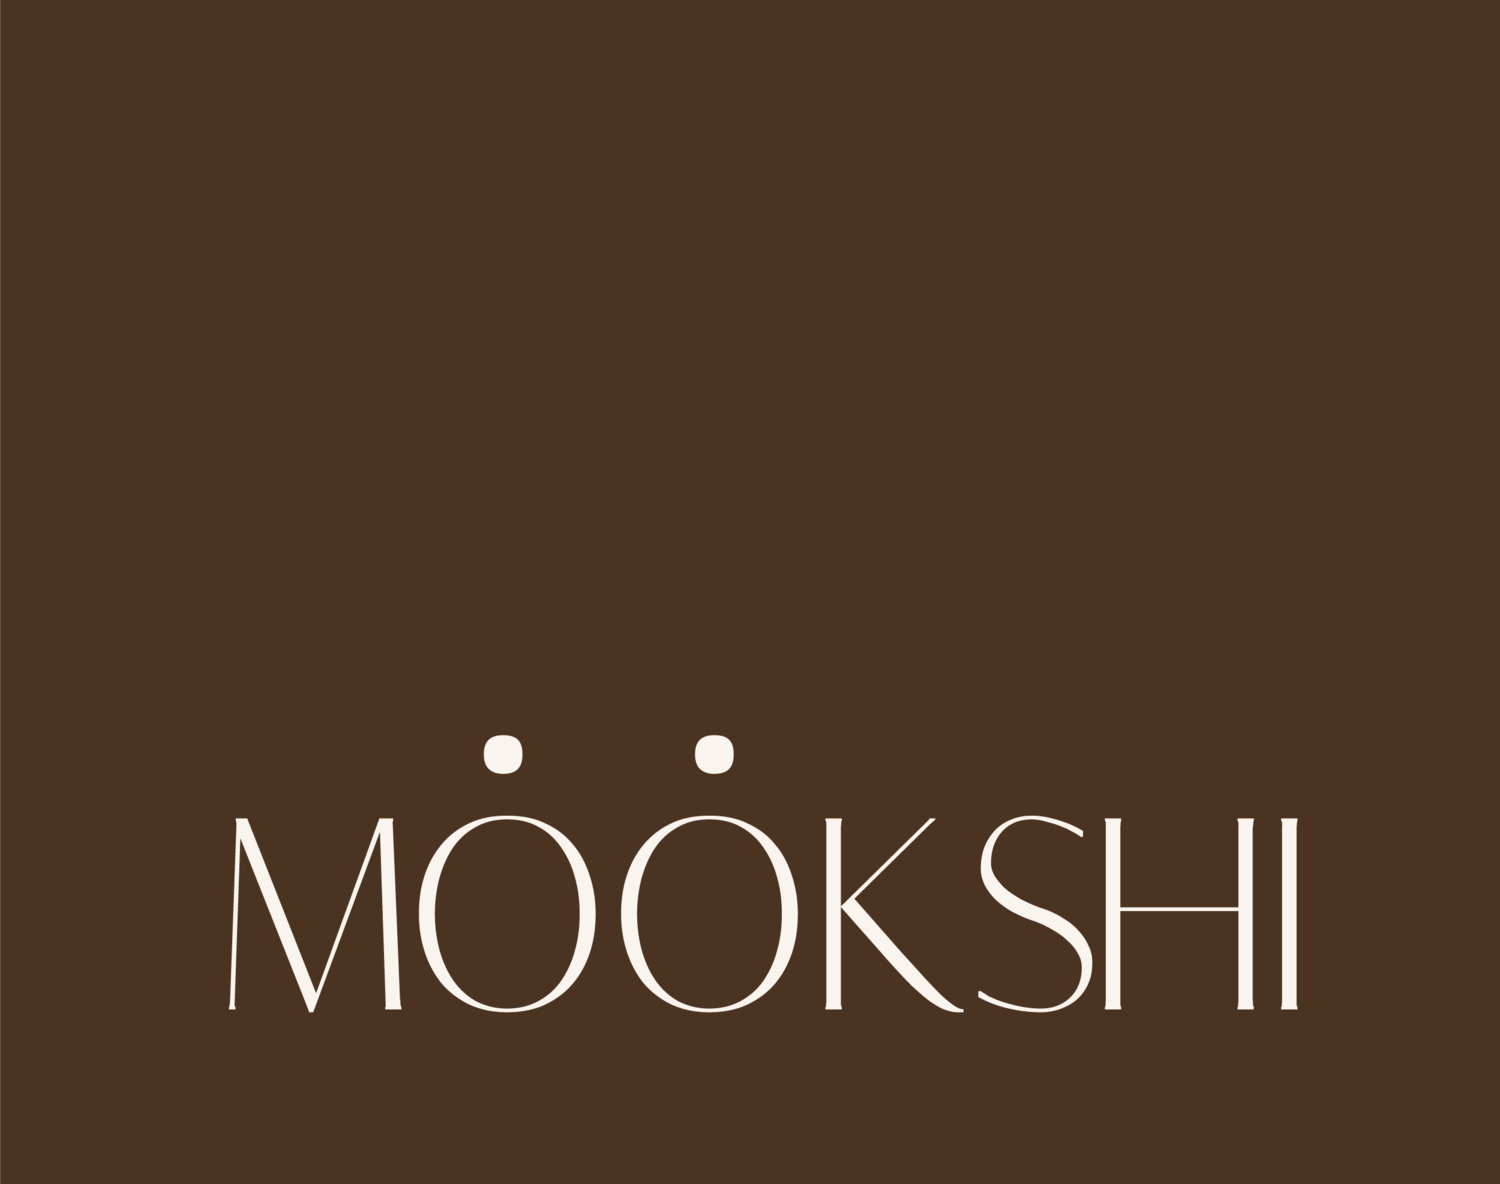 Mookshi Healing Arts Center